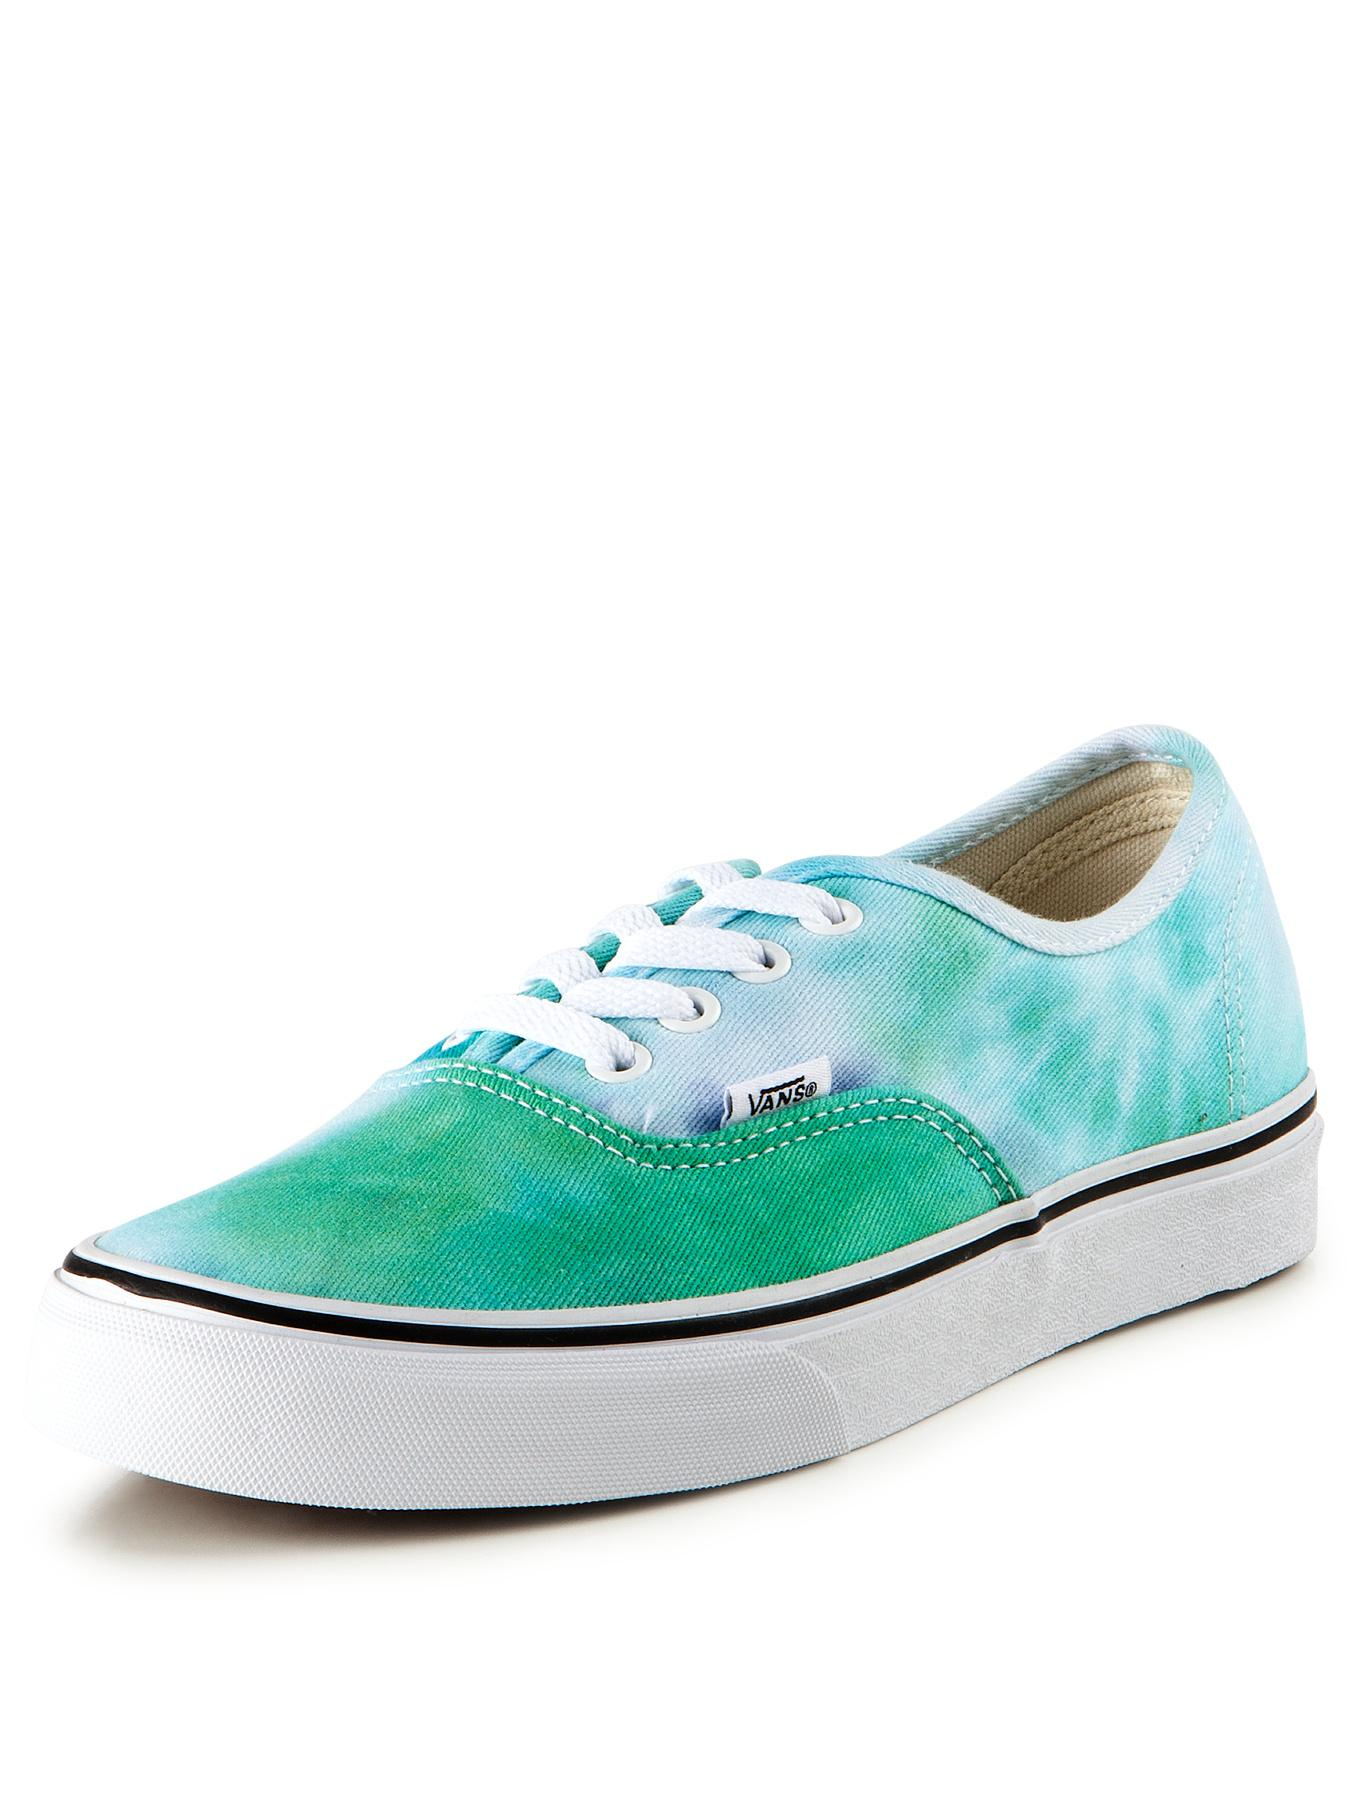 Vans Authentic Tie Dye Plimsolls - Navy, Navy